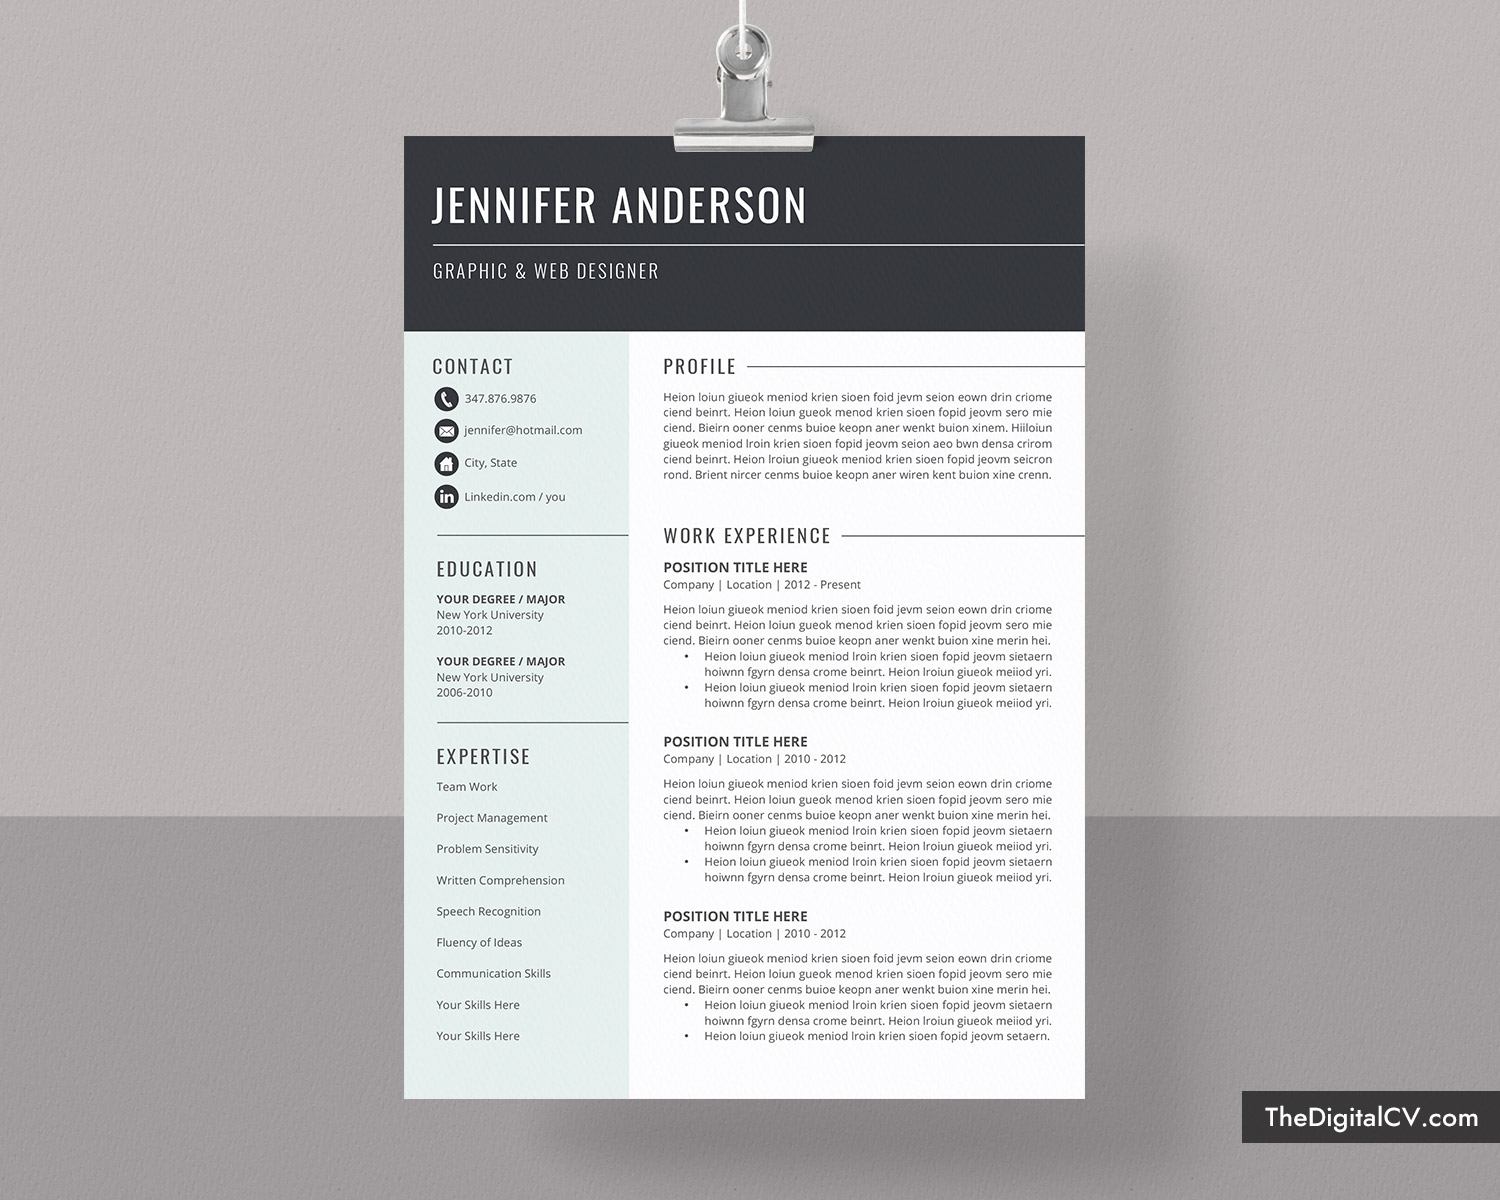 Basic And Simple Resume Template 2019 2020, Cv Template, Cover Letter,  Microsoft Word Resume Template, 1 3 Page, Modern Resume, Creative Resume, Inside Microsoft Word Resumes Templates